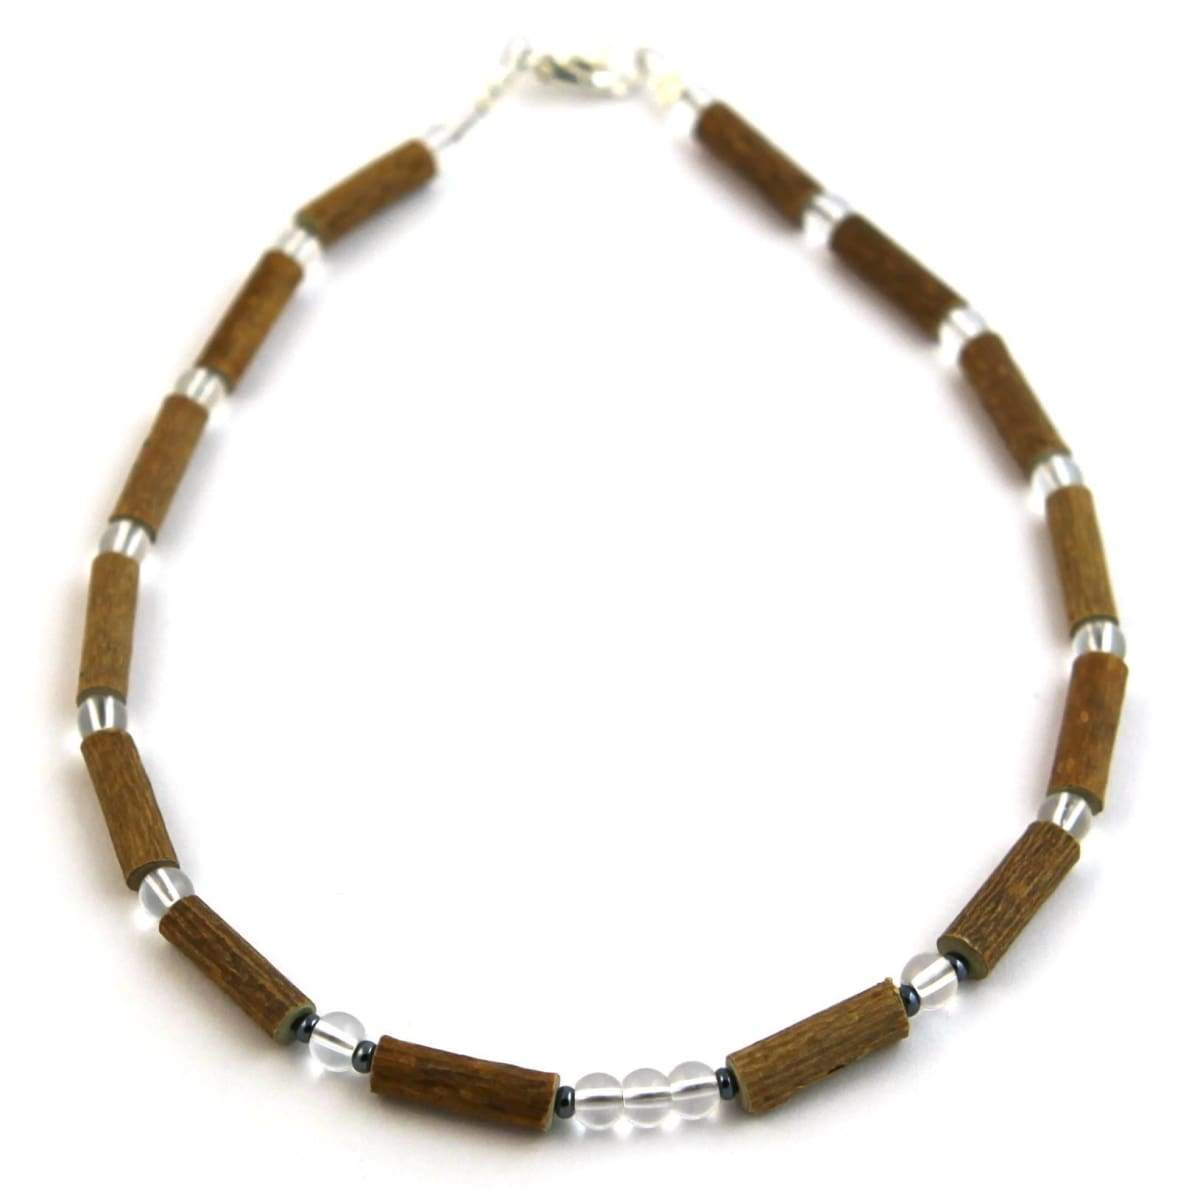 Hazel-Gemstone Crystal - 11 Necklace - Lobster Claw Clasp - Hazelwood & Gemstone Jewelry